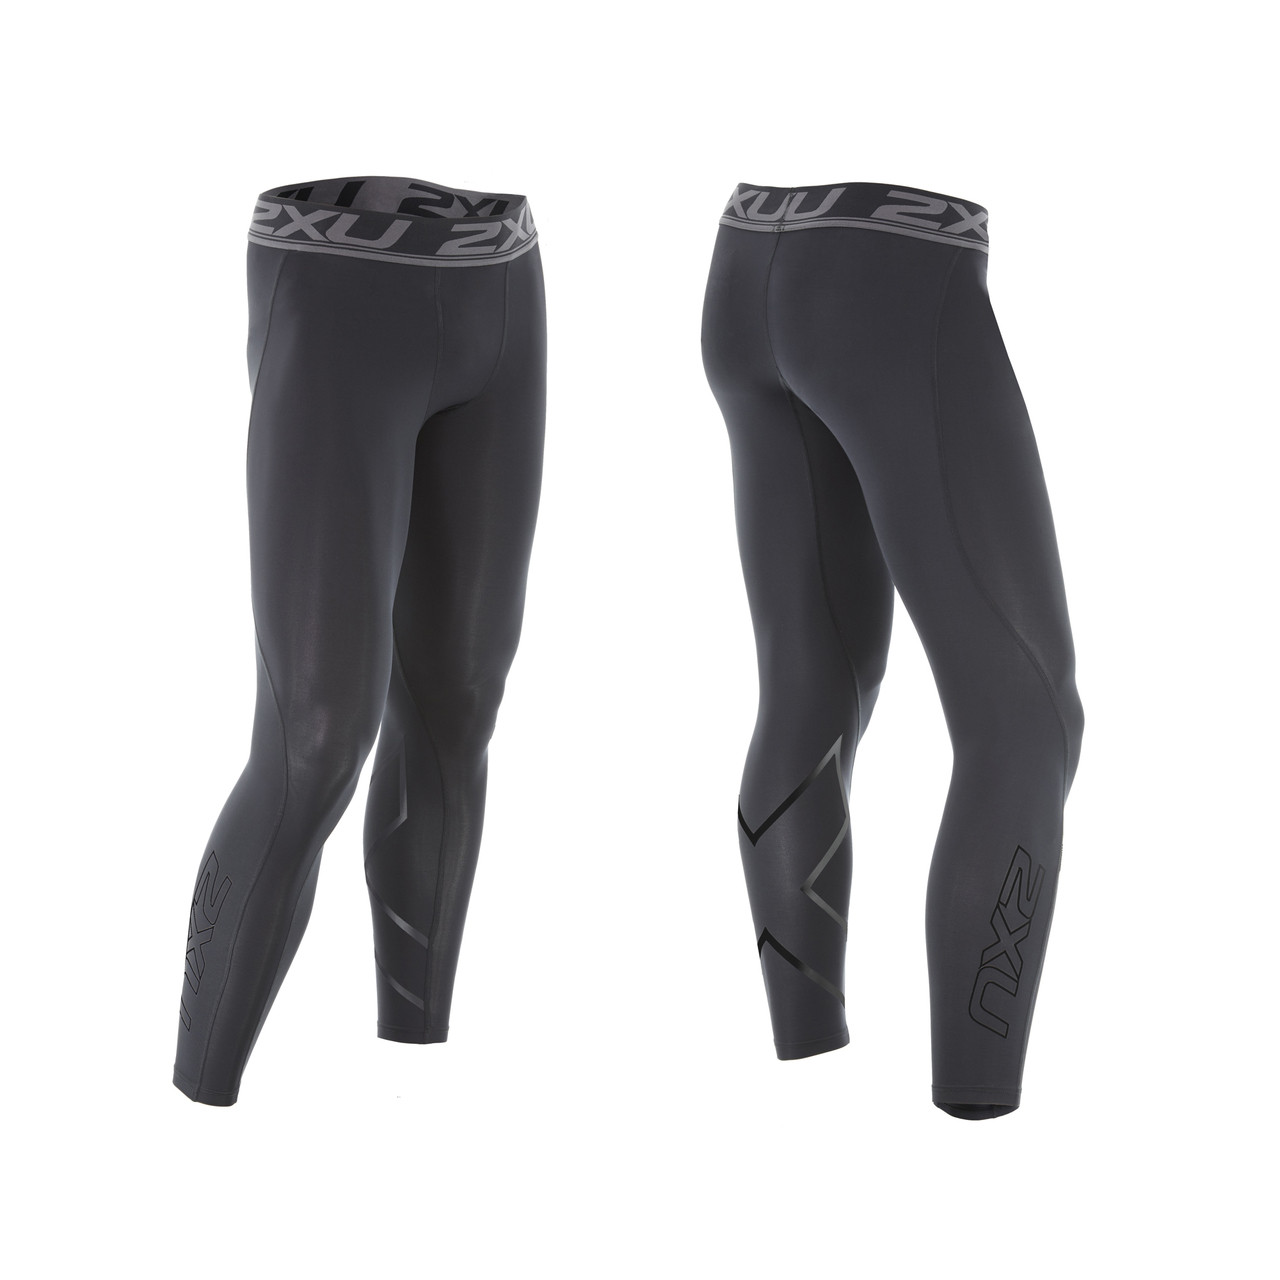 6ded4013b5ab3 2XU Men's Accelerate Compression Tights